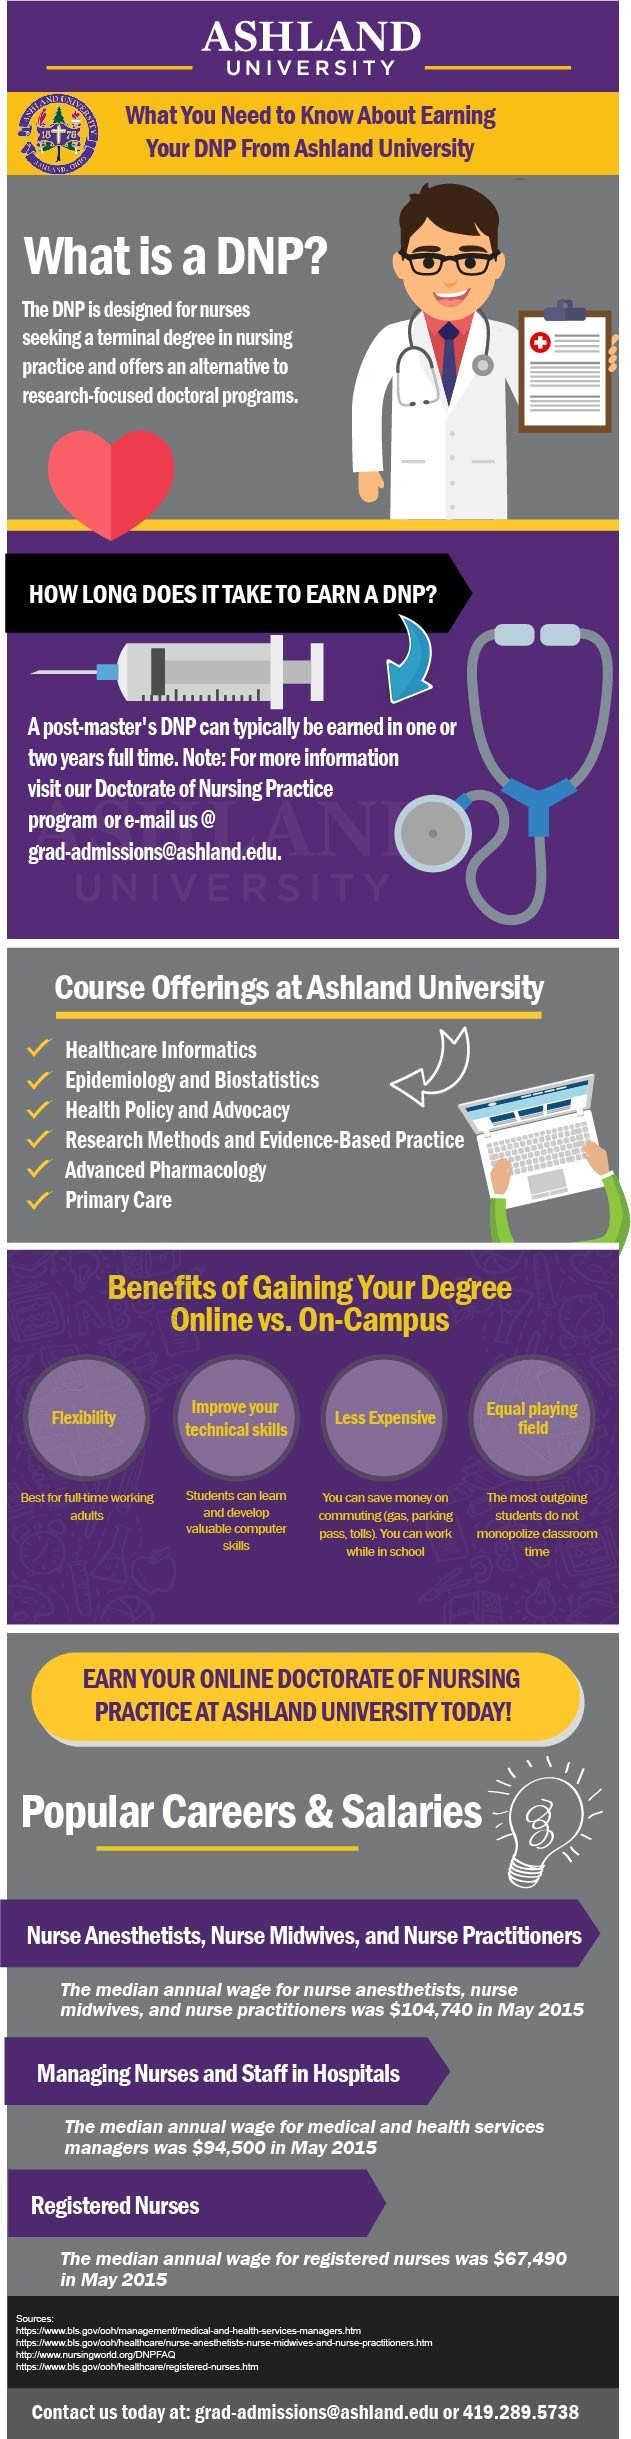 What You Need to Know About Earning Your DNP Online - Ashland University